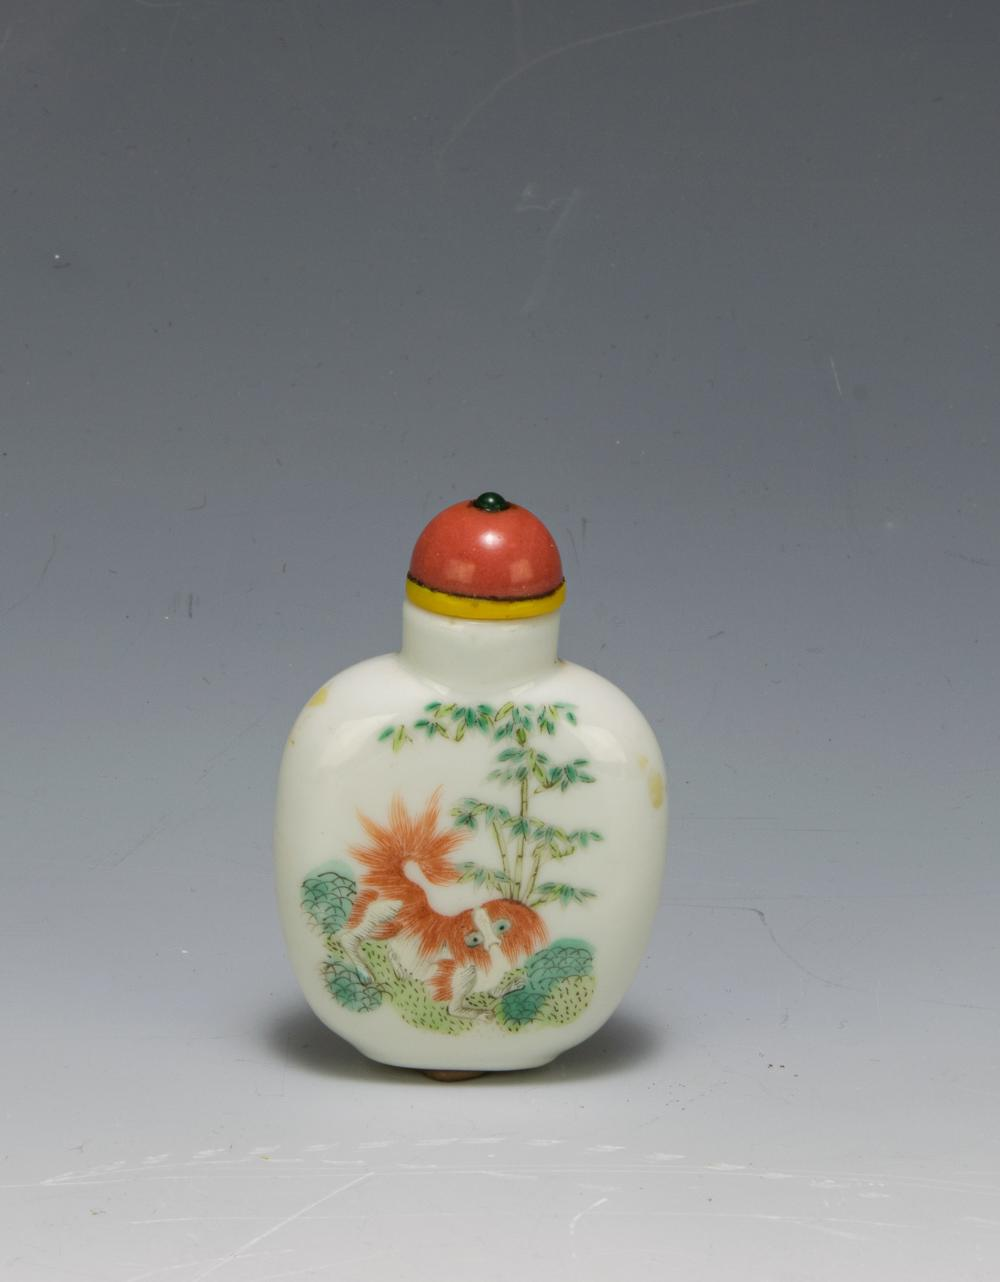 Lot 636: CHINESE IMPERIAL DAOGUANG PORCELAIN SNUFF BOTTLE